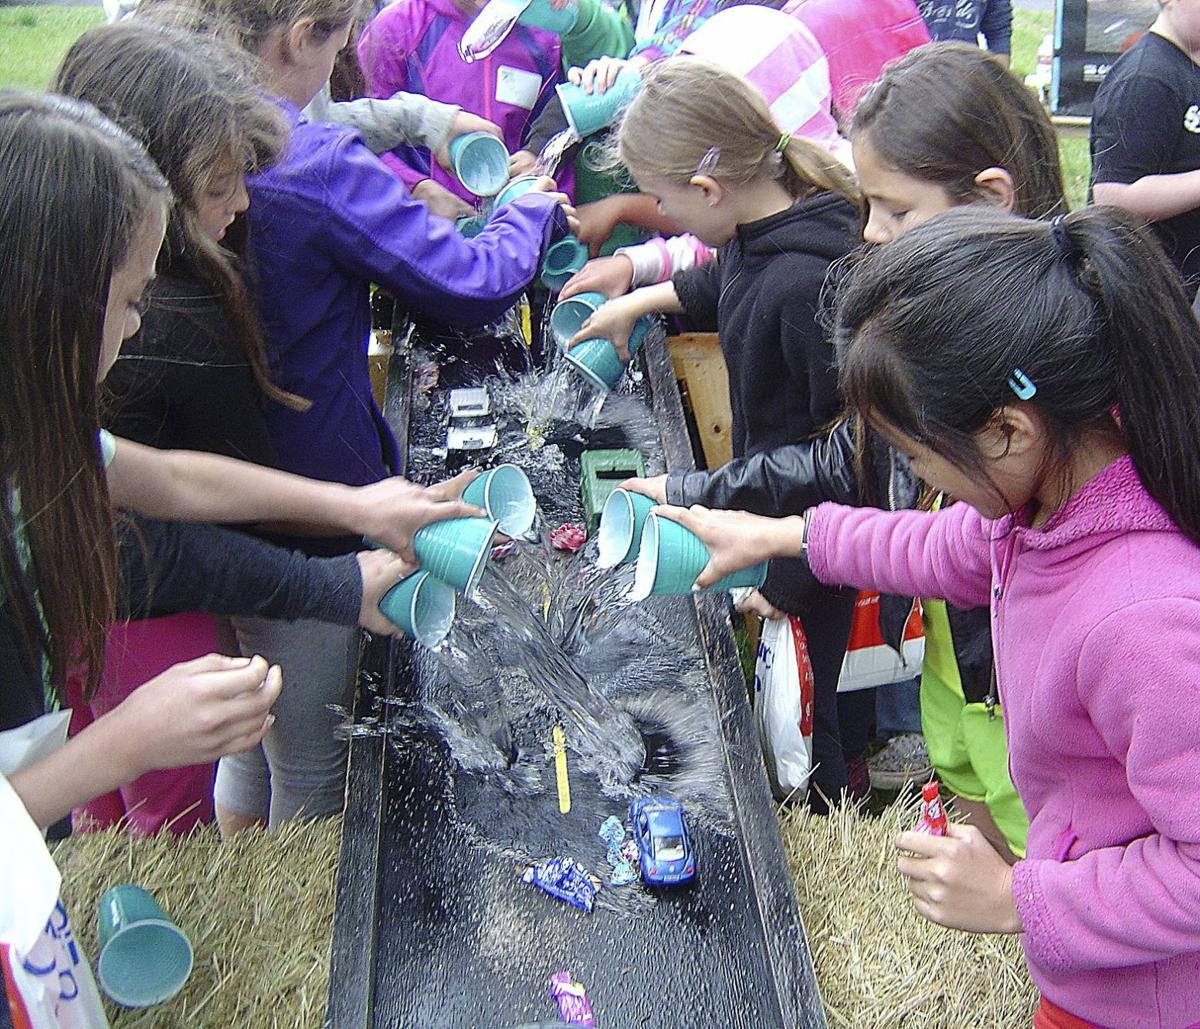 Hands-on activities teach hydrology, math at ag ed day